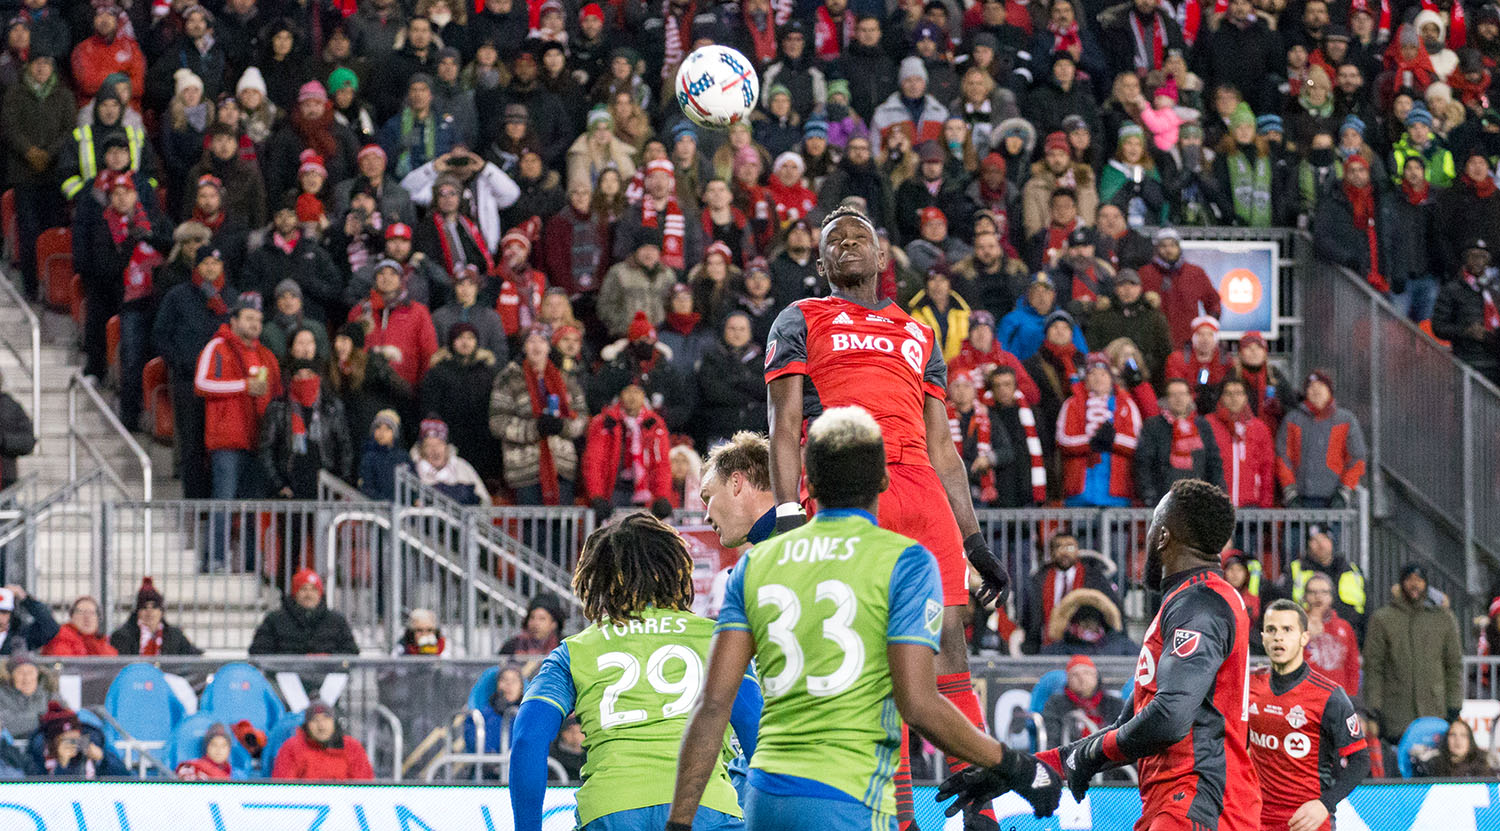 Chris Mavinga goes into the air in the Seattle 18 yard box against the Seattle Sounders during the 2017 MLS Cup Final at BMO FIeld.Image by Dennis Marciniak of denMAR Media.